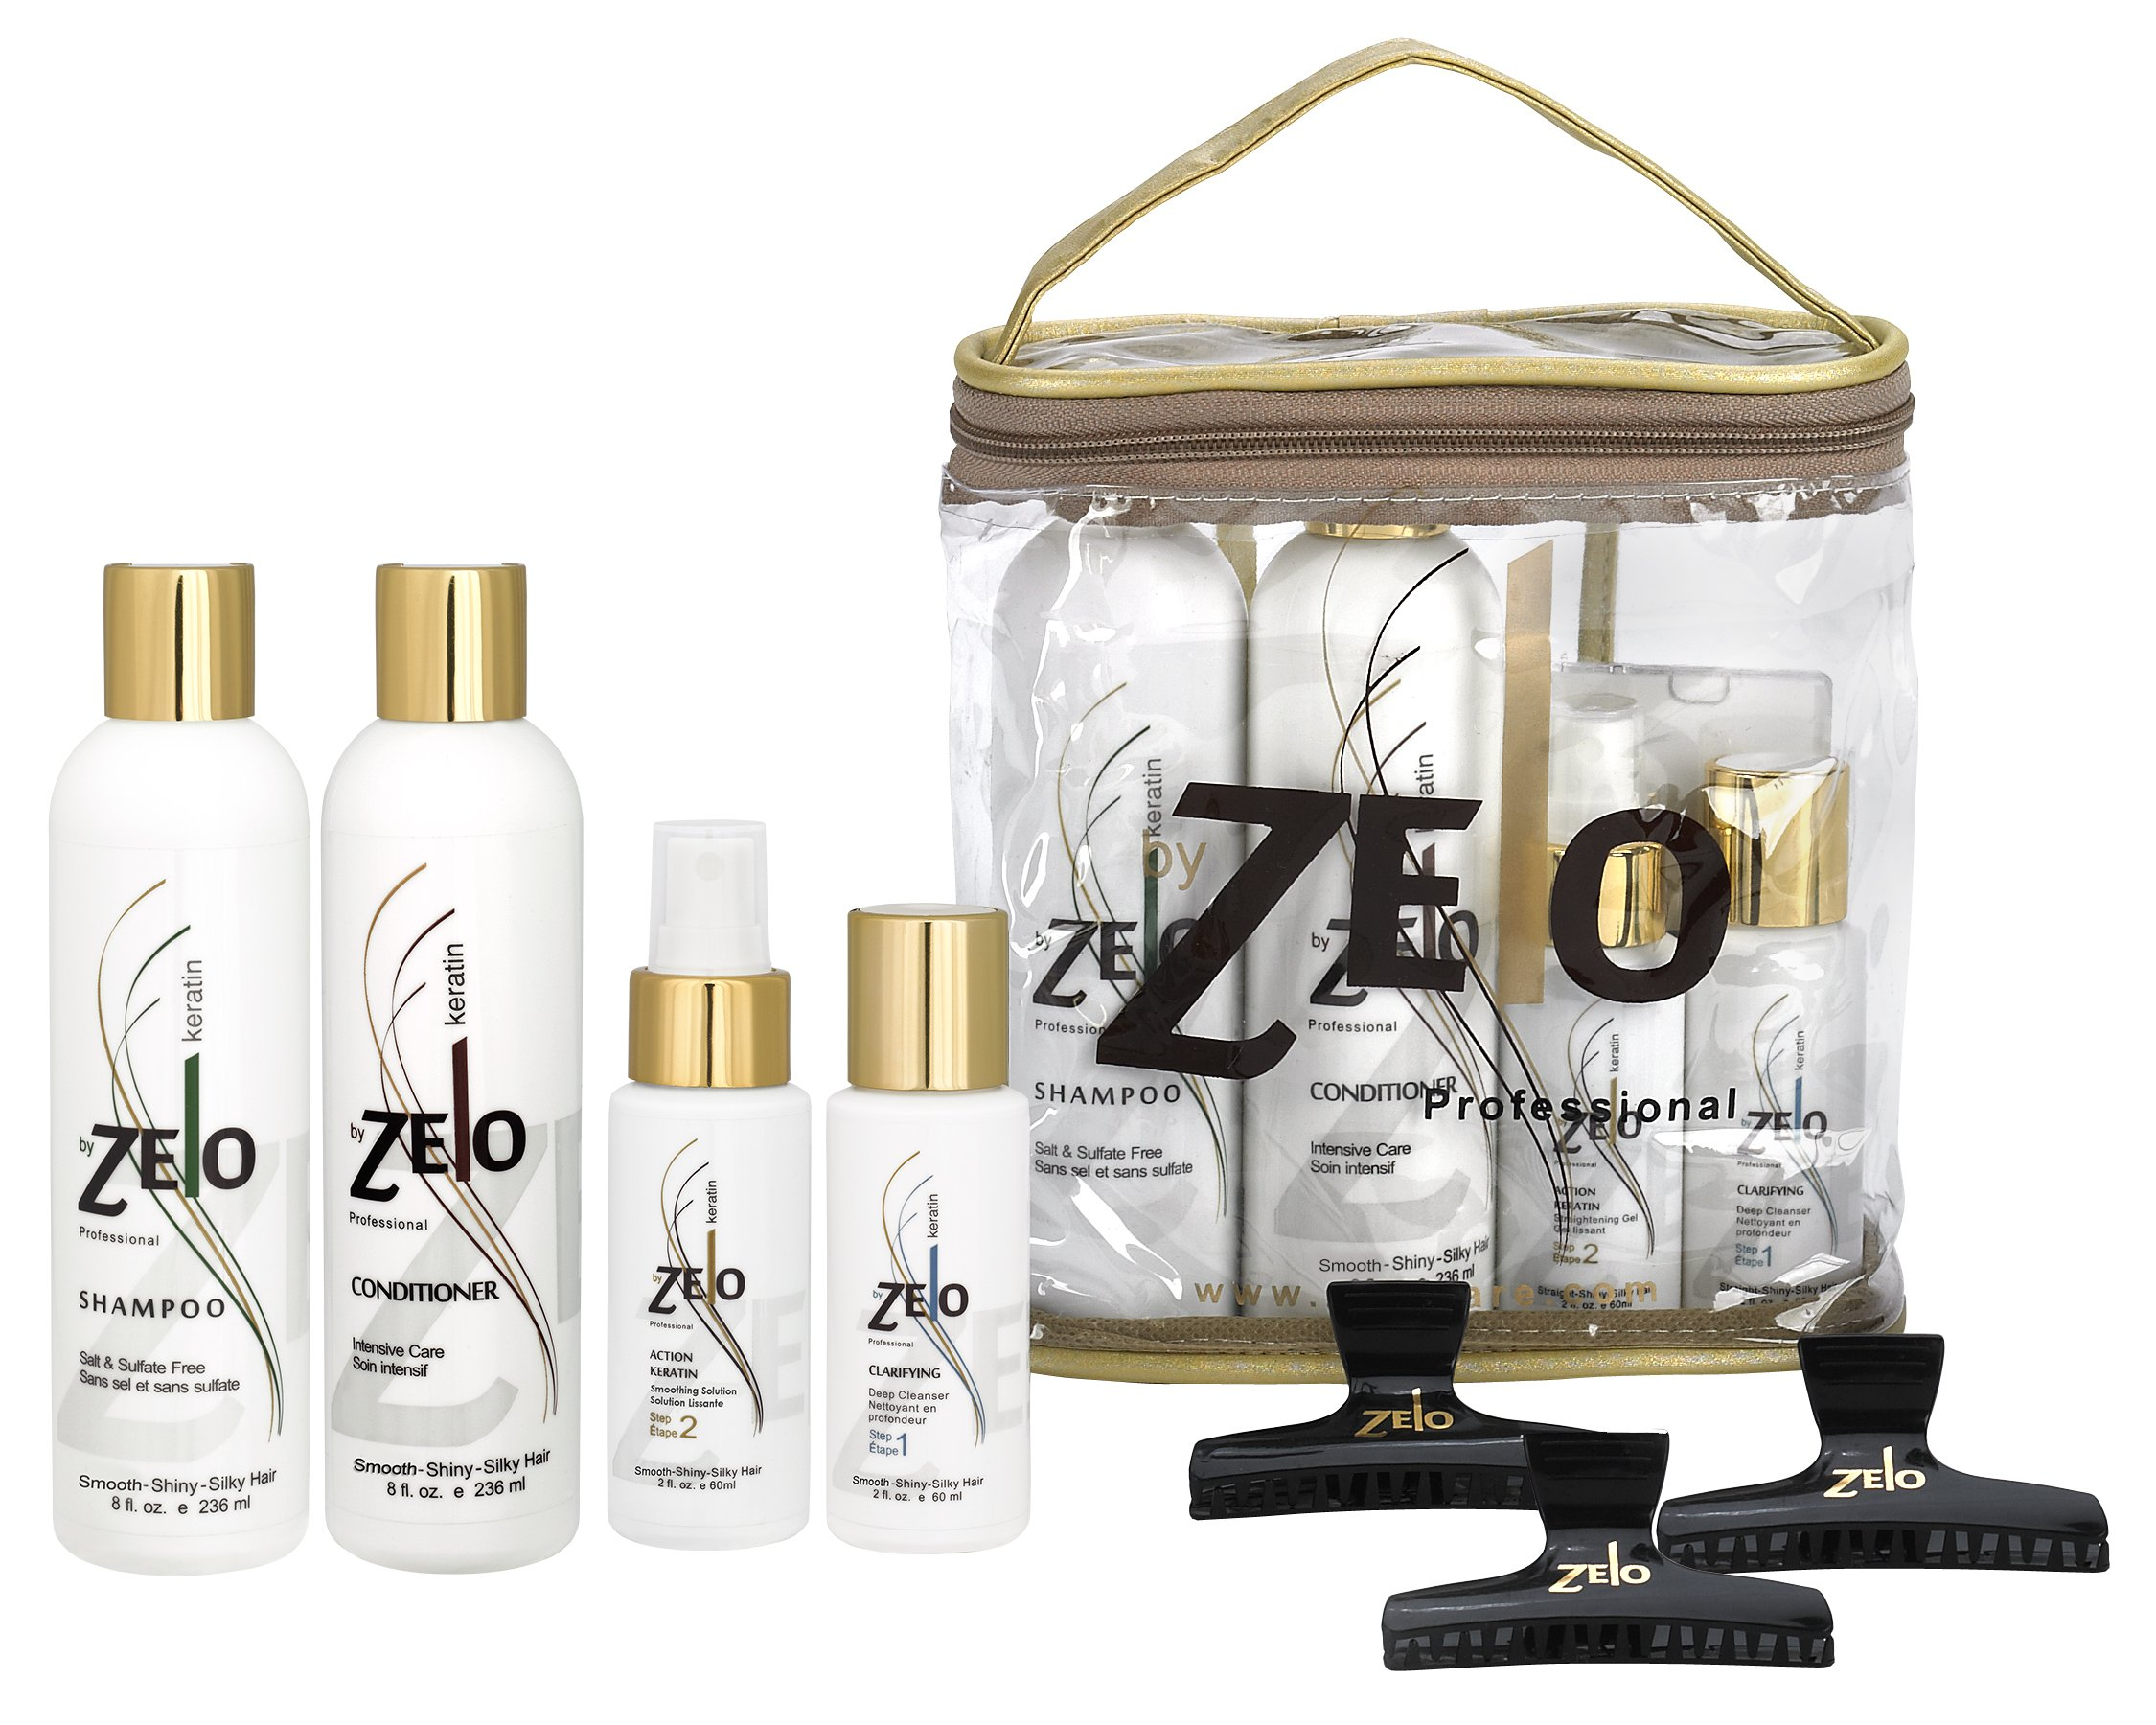 Zelo Brazilian Keratin Hair Kit | Clarifying Sulfate Free Shampoo, Intensive Care Conditioner, Deep Cleanser Keratin, Smoothing Gel & Hair Clips | Eliminate Frizz & Volume | Soften & Straighten Hair